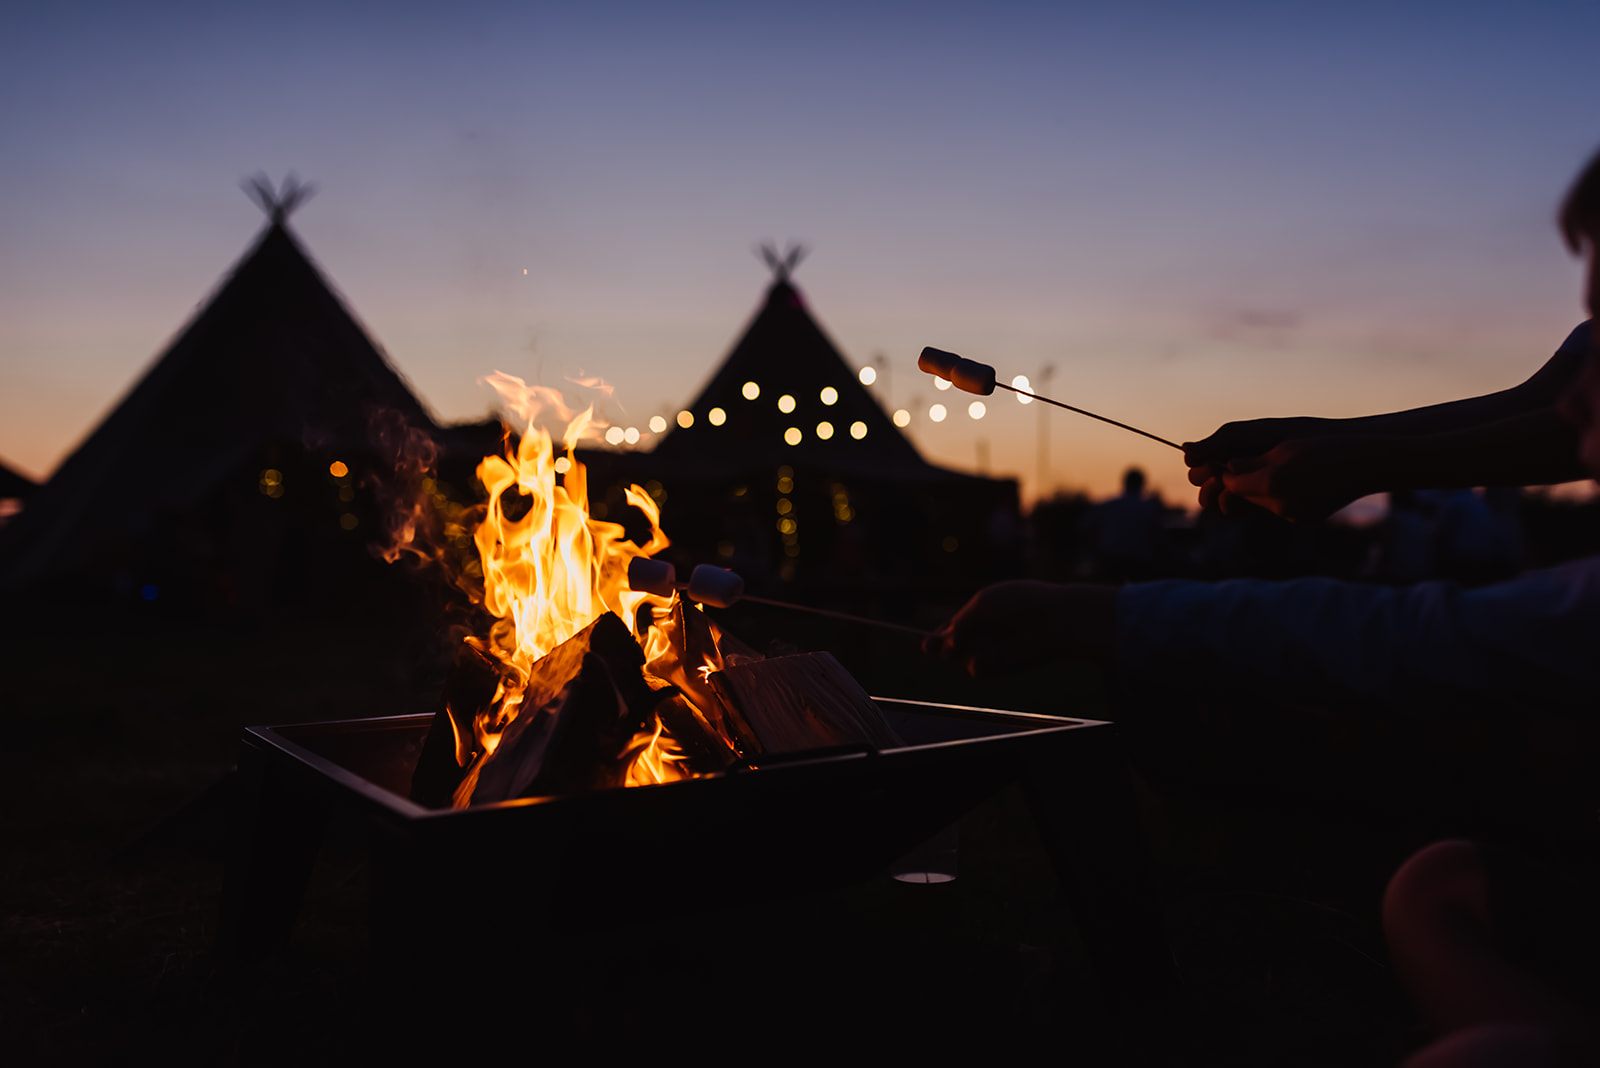 fire pit at tipi wedding toasting marshmallows at sunset